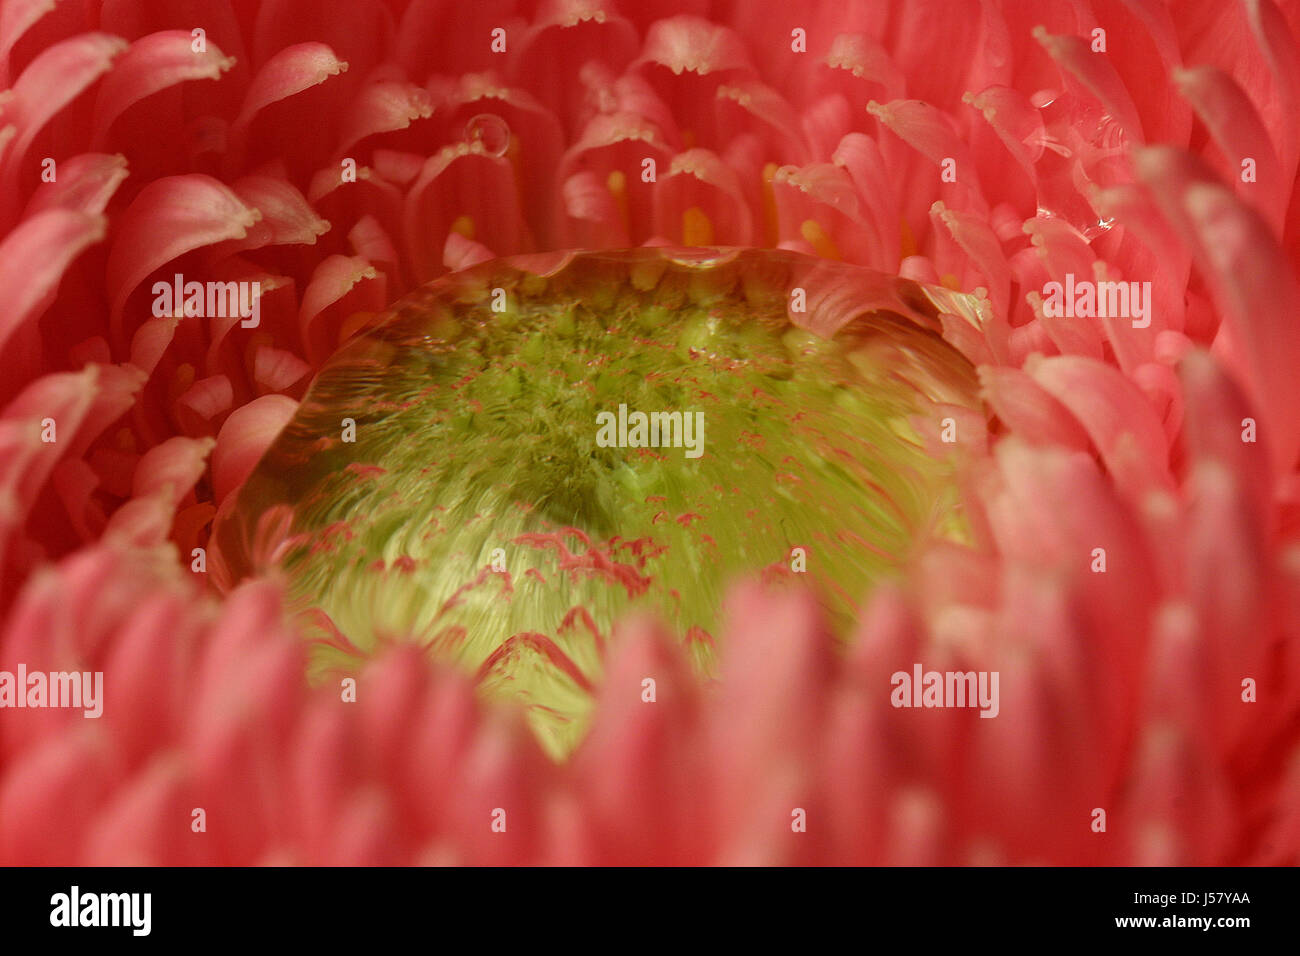 macro close-up macro admission close up view feeling emotions flower plant rose Stock Photo